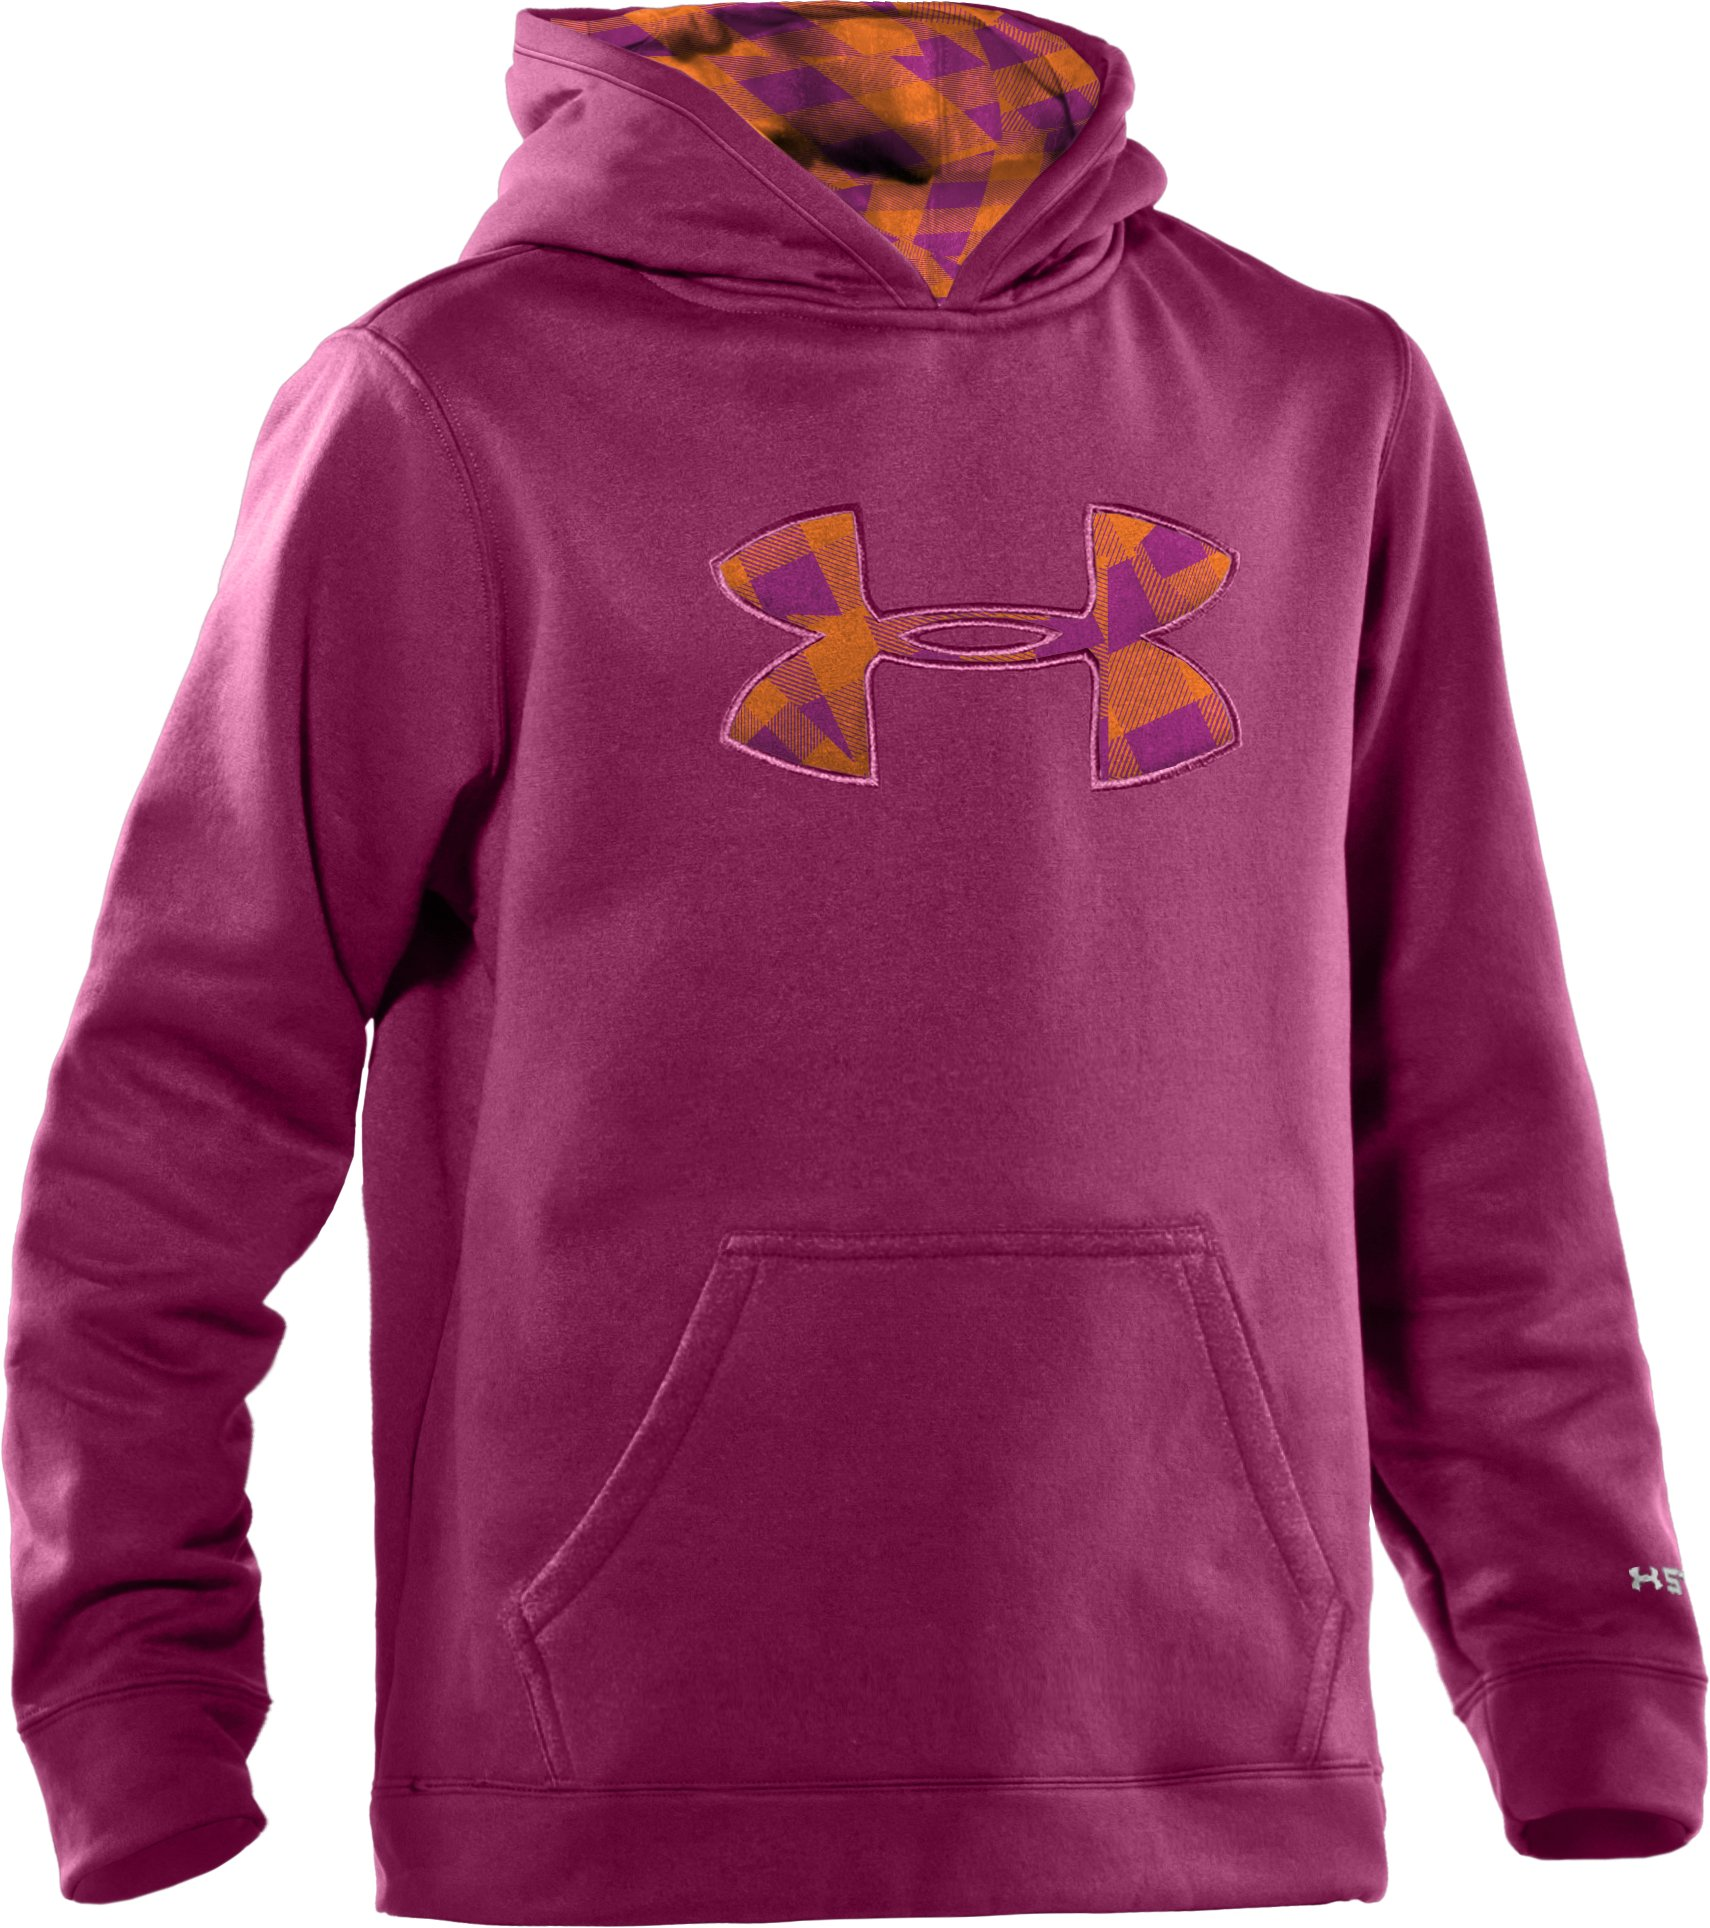 Girls' Armour® Fleece Storm Big Logo Hoodie, Rosewood, zoomed image